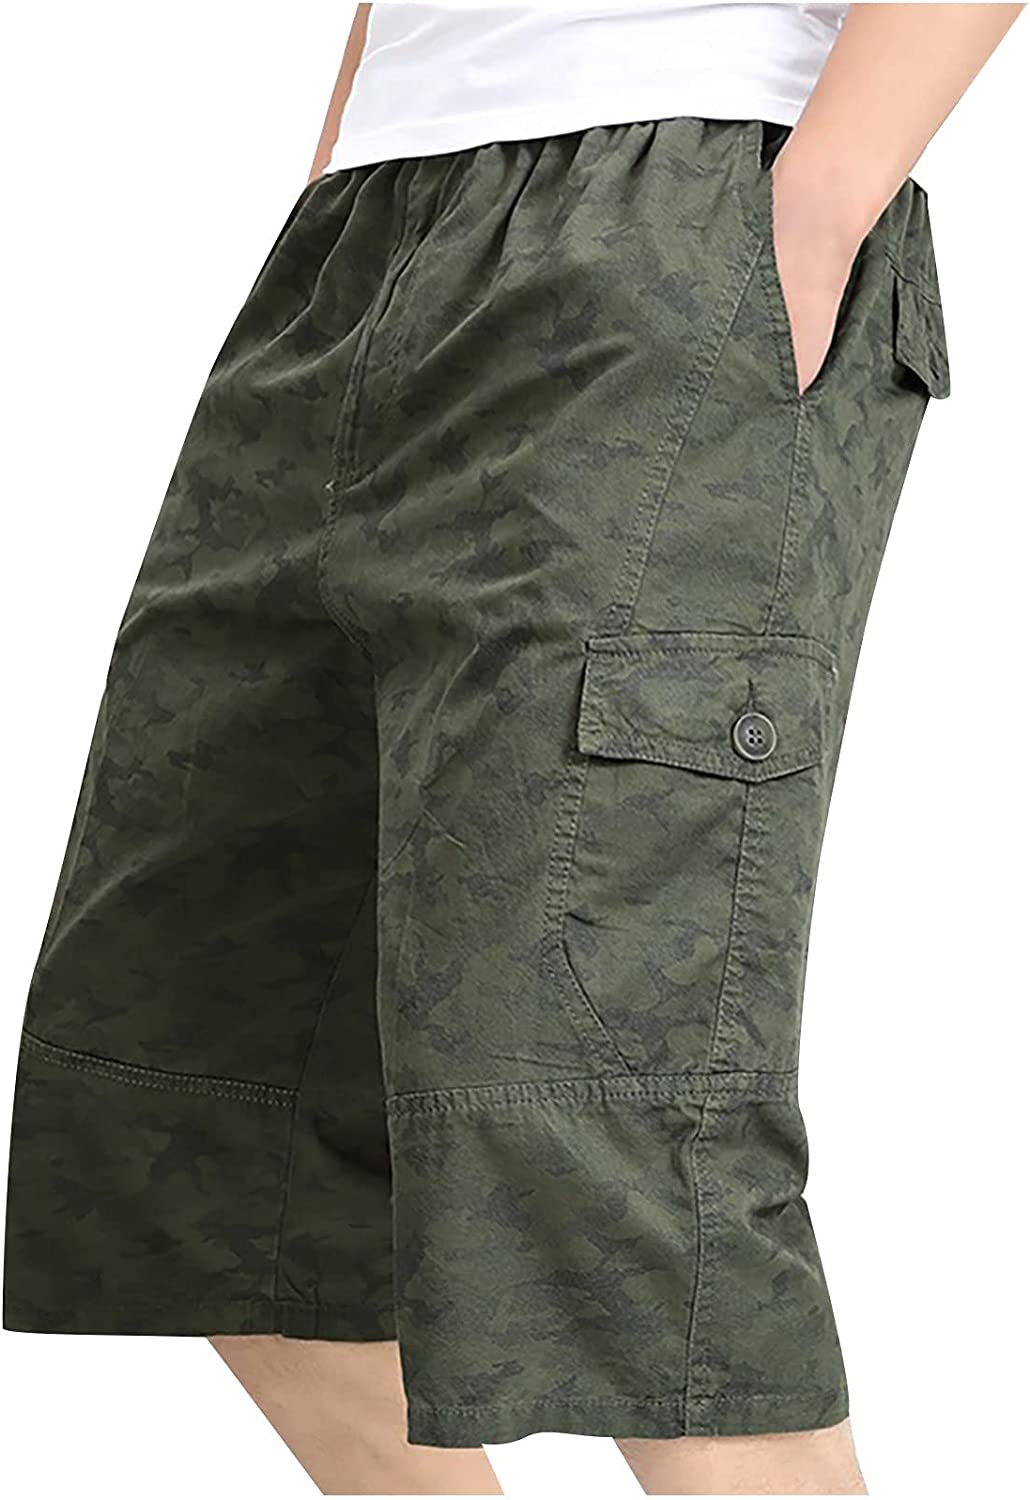 EseFGJK Men's Relaxed Printed Workwear Sports Shorts,Casual Loose Pants with Zipper Button Pocket Cargo Short